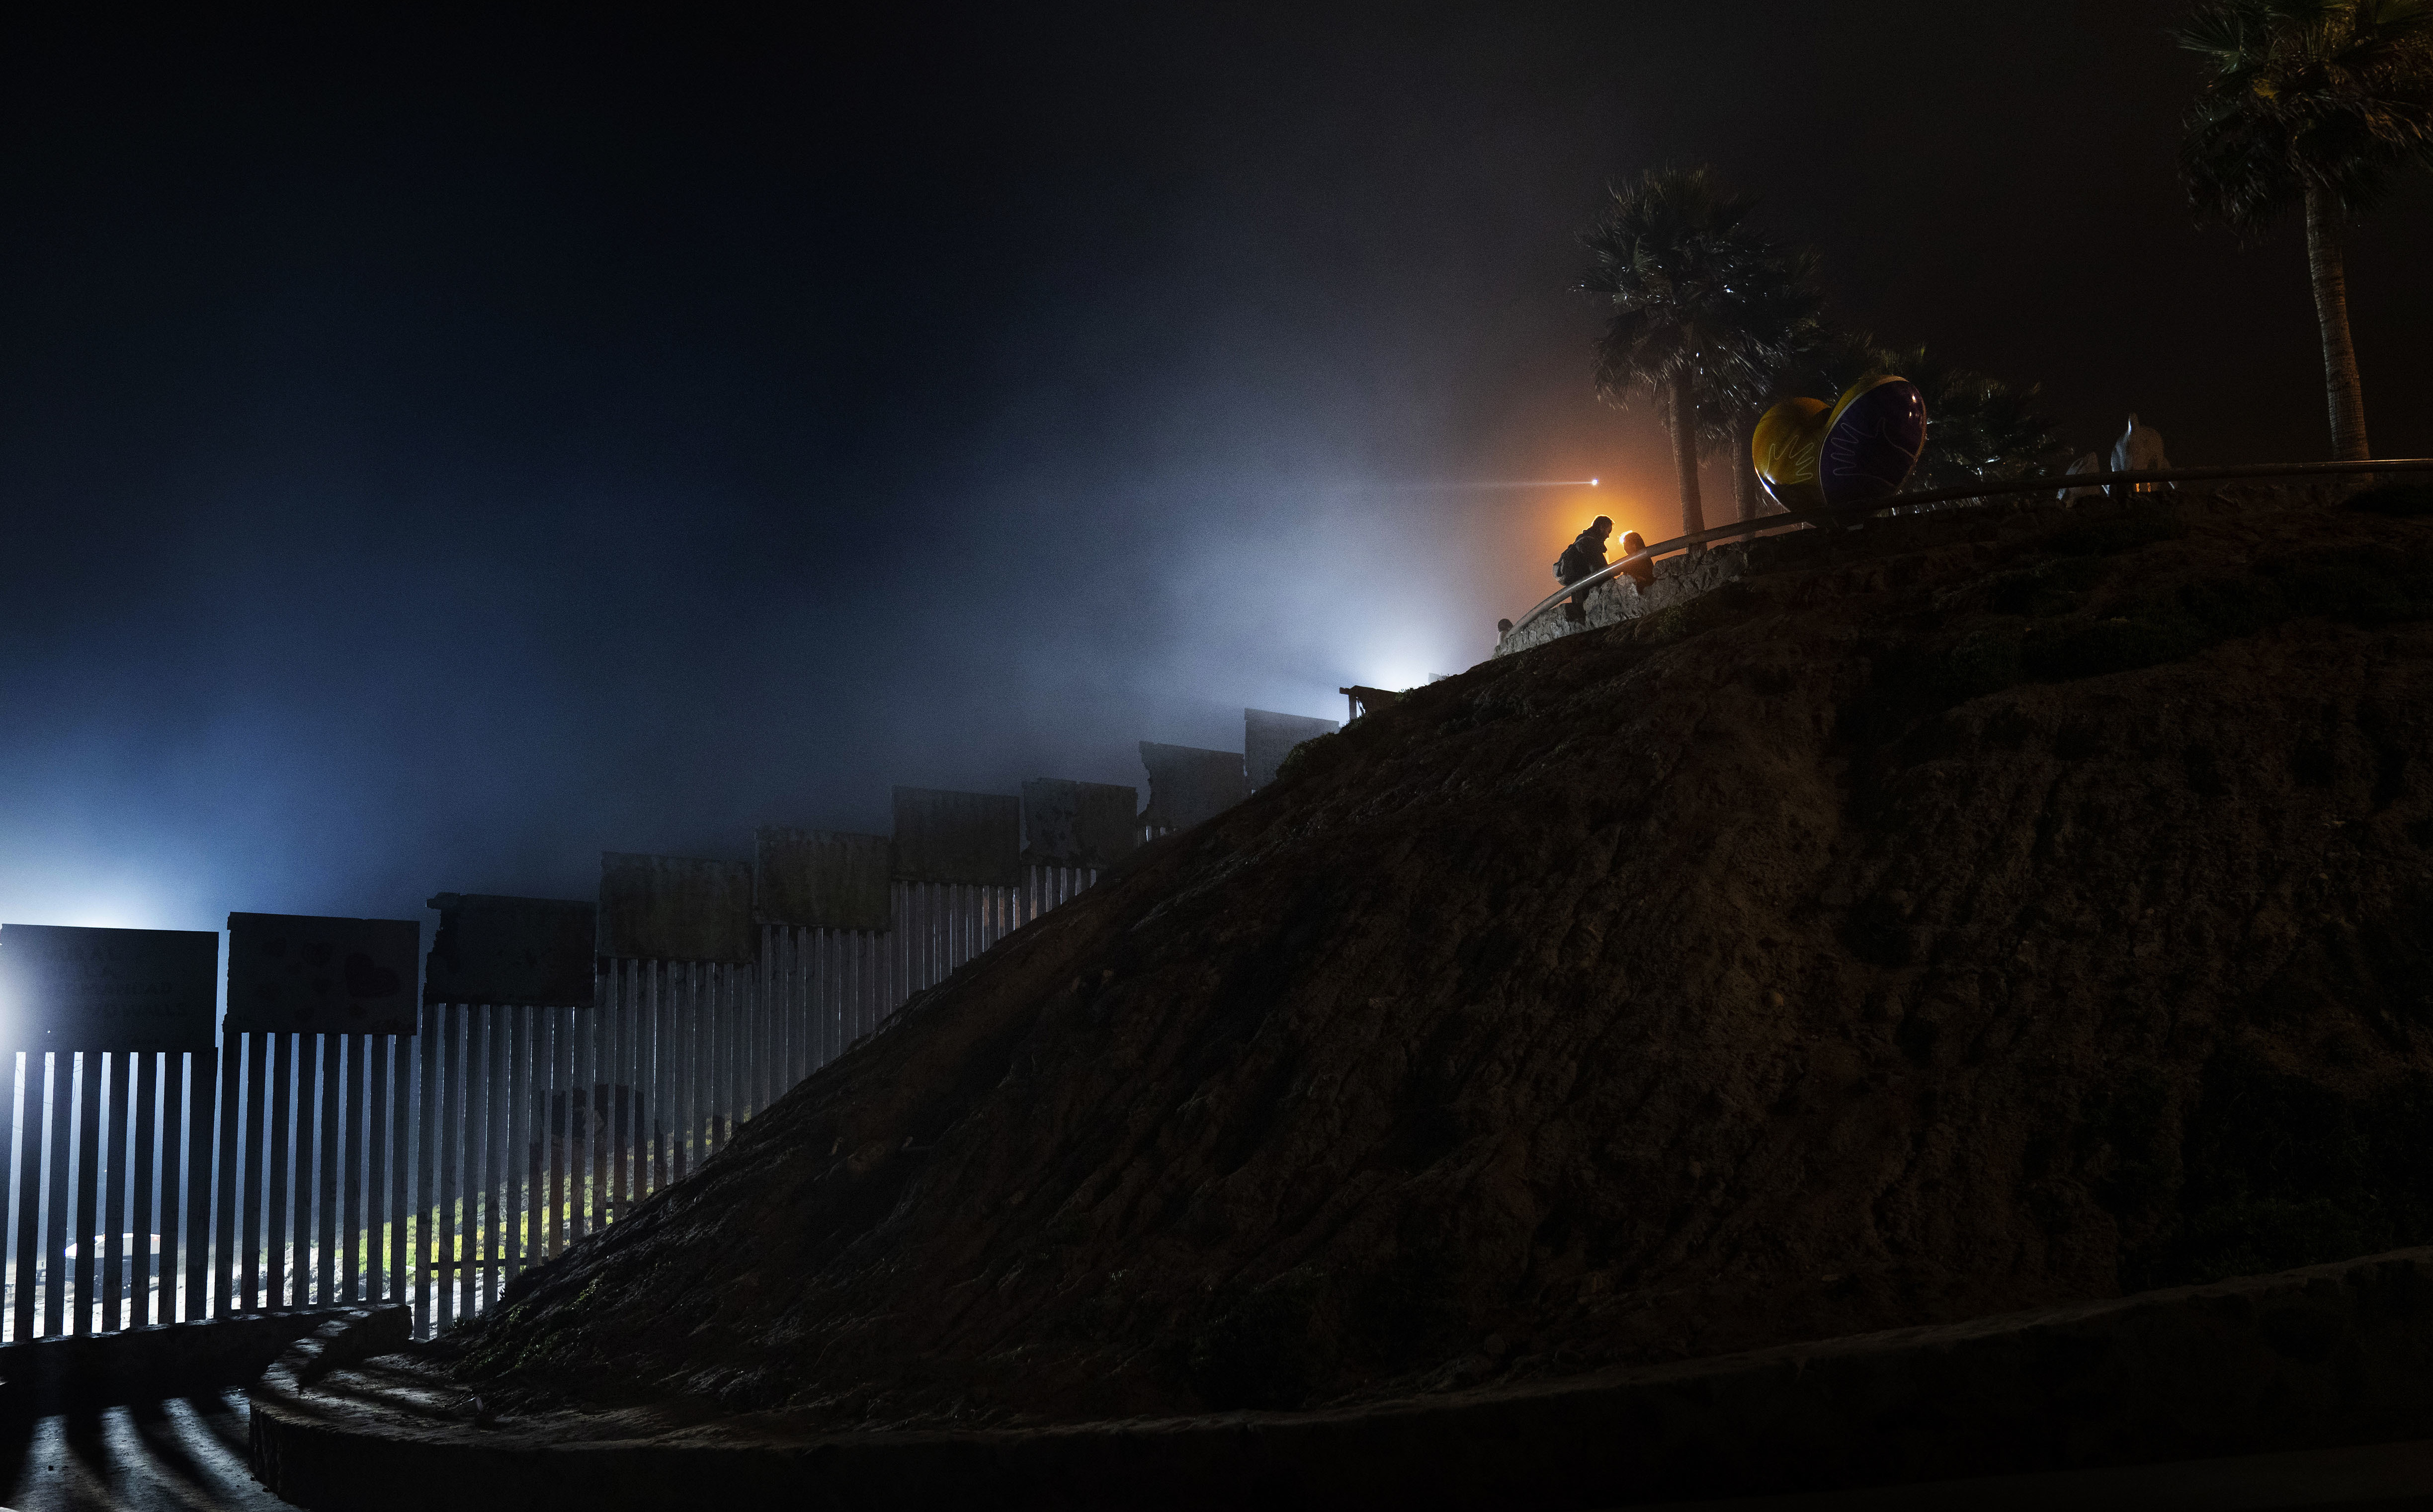 Bipartisan lawmakers agreed to a spending deal to provide more federal resources for border security, including for physical barriers along the U.S.-Mexico border, similar to the one  pictured in Tijuana, Mexico.